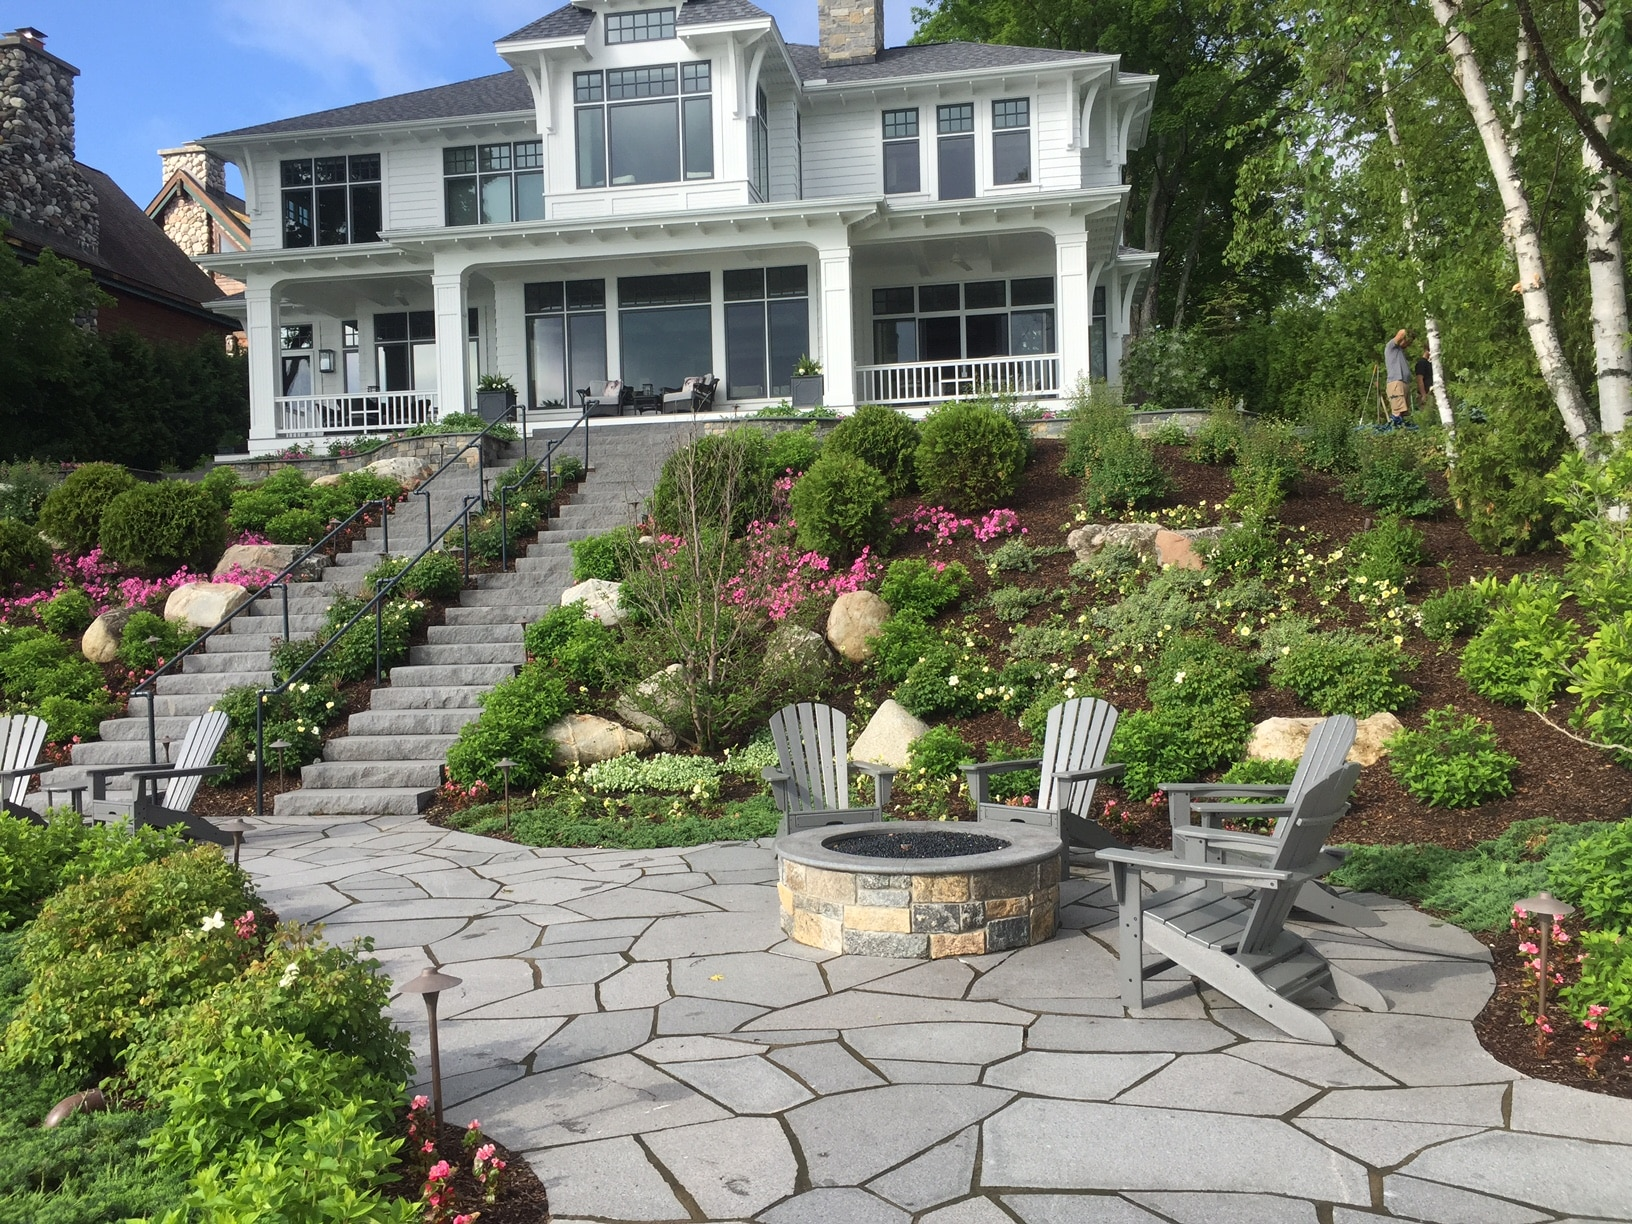 stone steps, walkway and patio provide masonry fire pits like this beauty and functionality. Framed by just the right design of beautiful plants and mulch. Designed for years of enjoyment